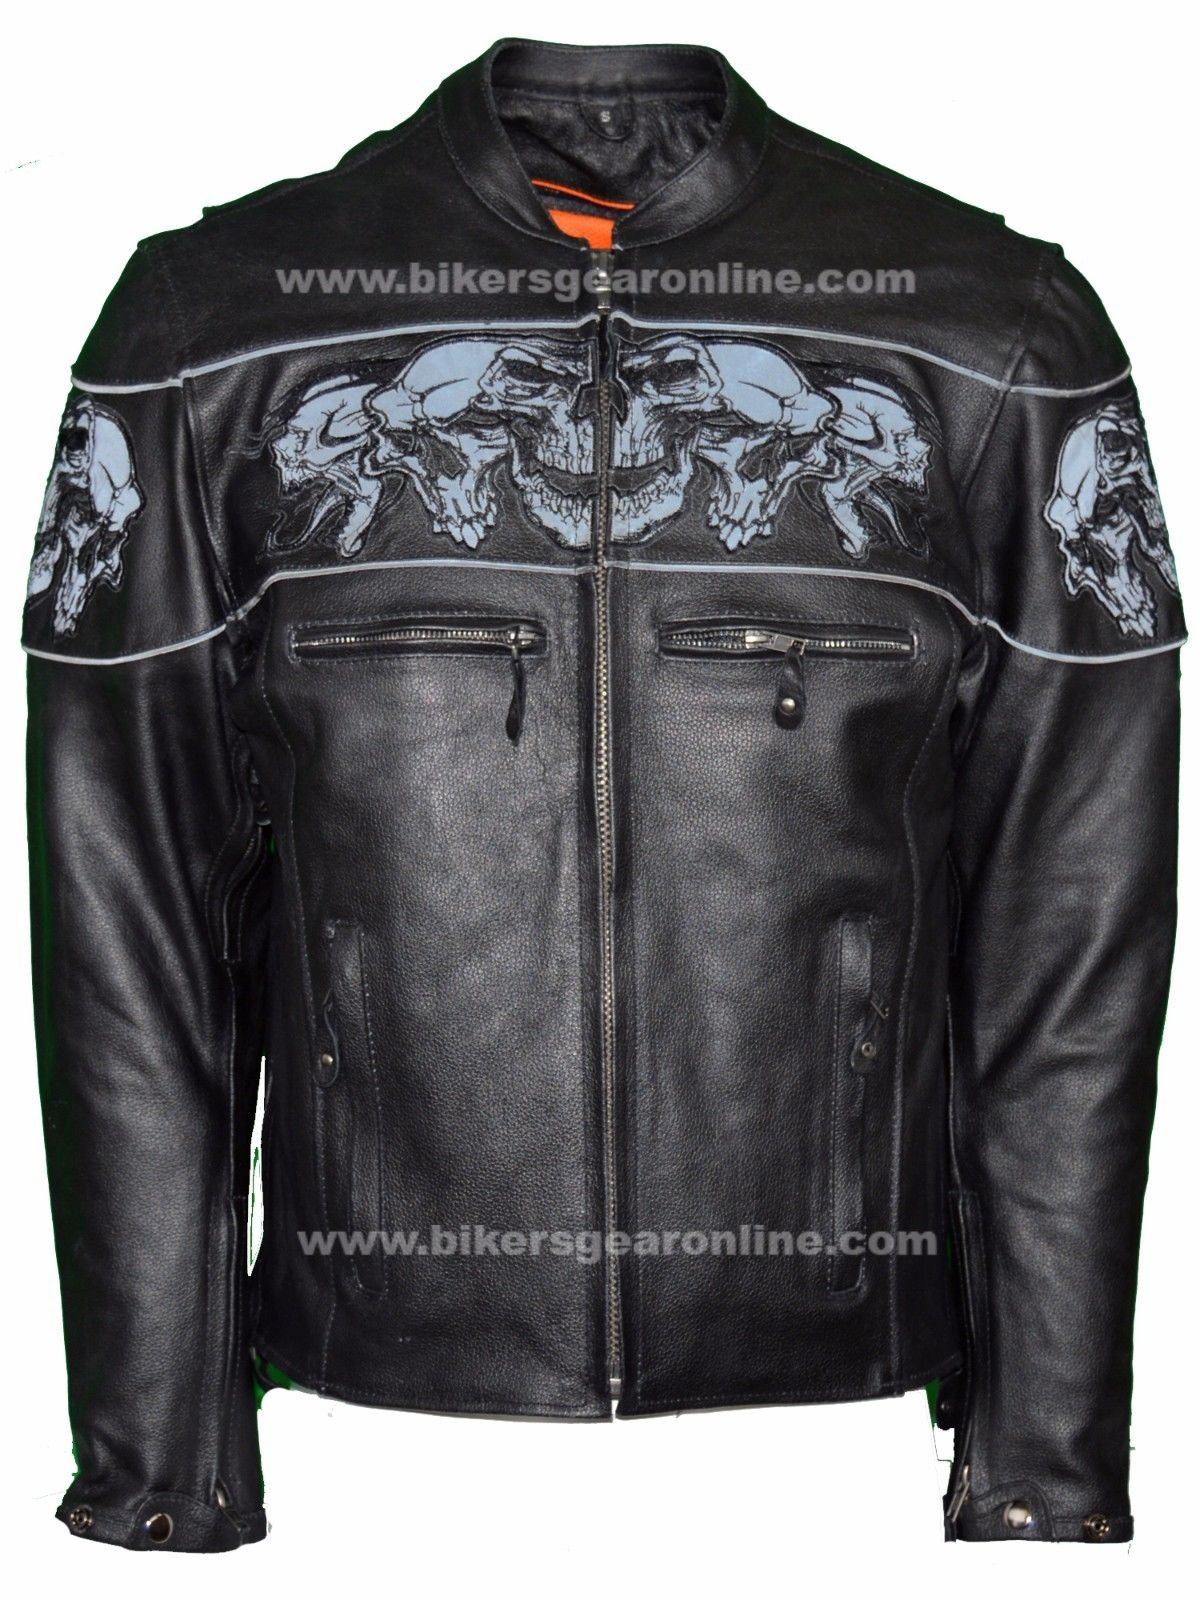 Dealer Leather MEN'S RIDING REFLECTIVE SKULLS CROSSOVER LEATHER JACKET VENTED THICK LEATHER NEW (L Regular)